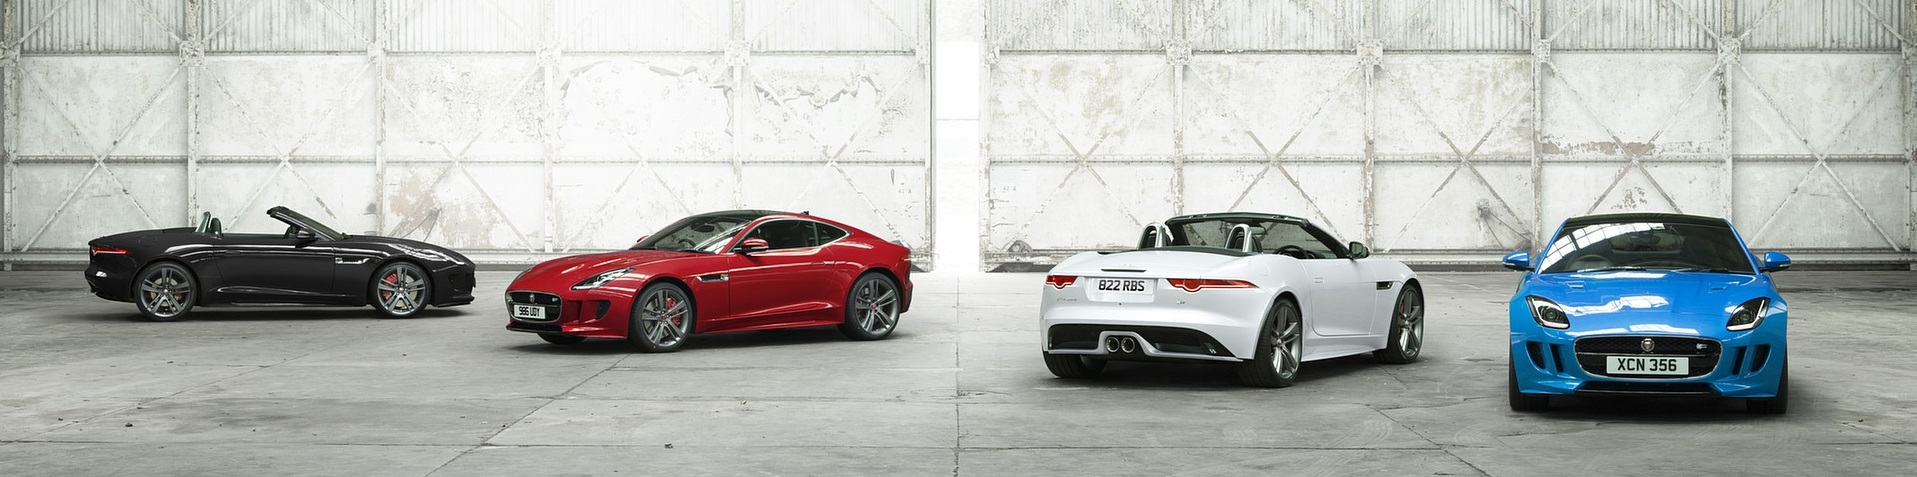 Jaguar F-Type 2014 -